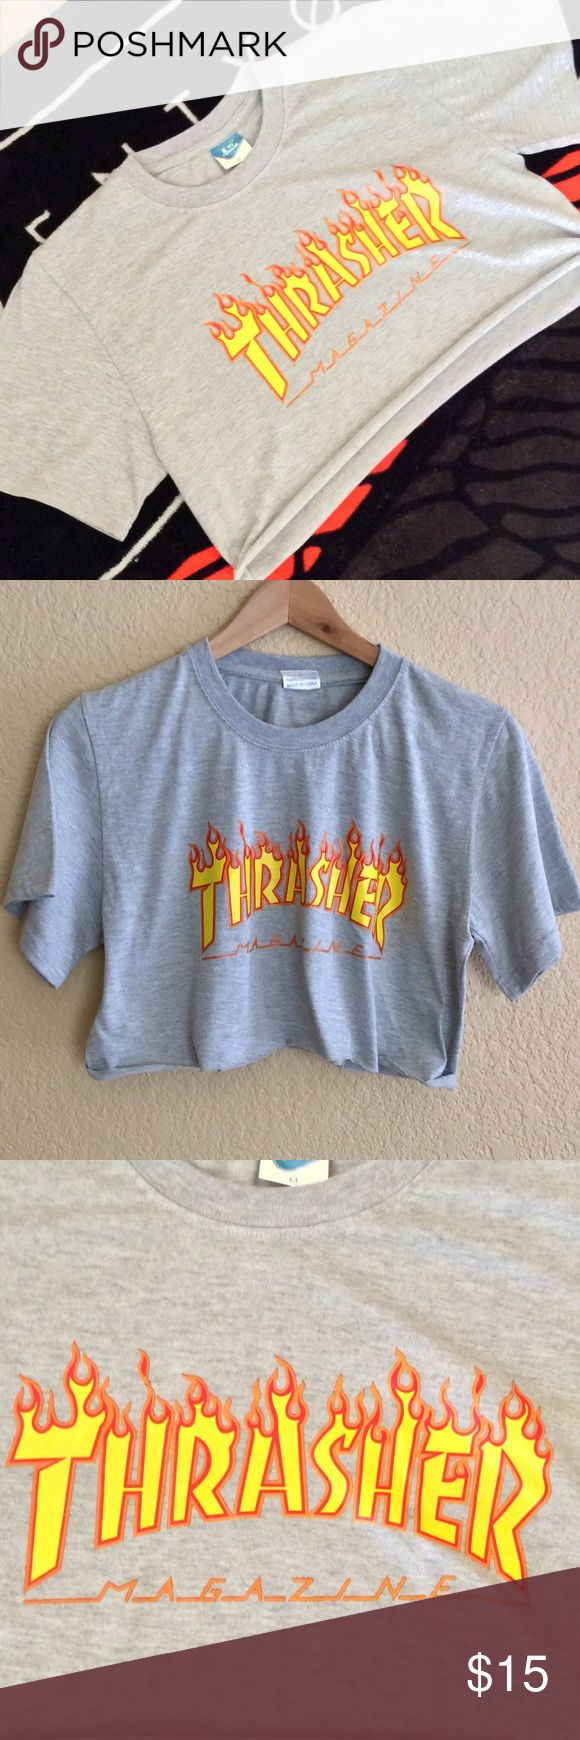 Thrasher Flame Crop Top S M Gray cropped T shirt. Tag size M, however may fit S-M. Not thrasher magazine. thrasher Tops Crop Tops